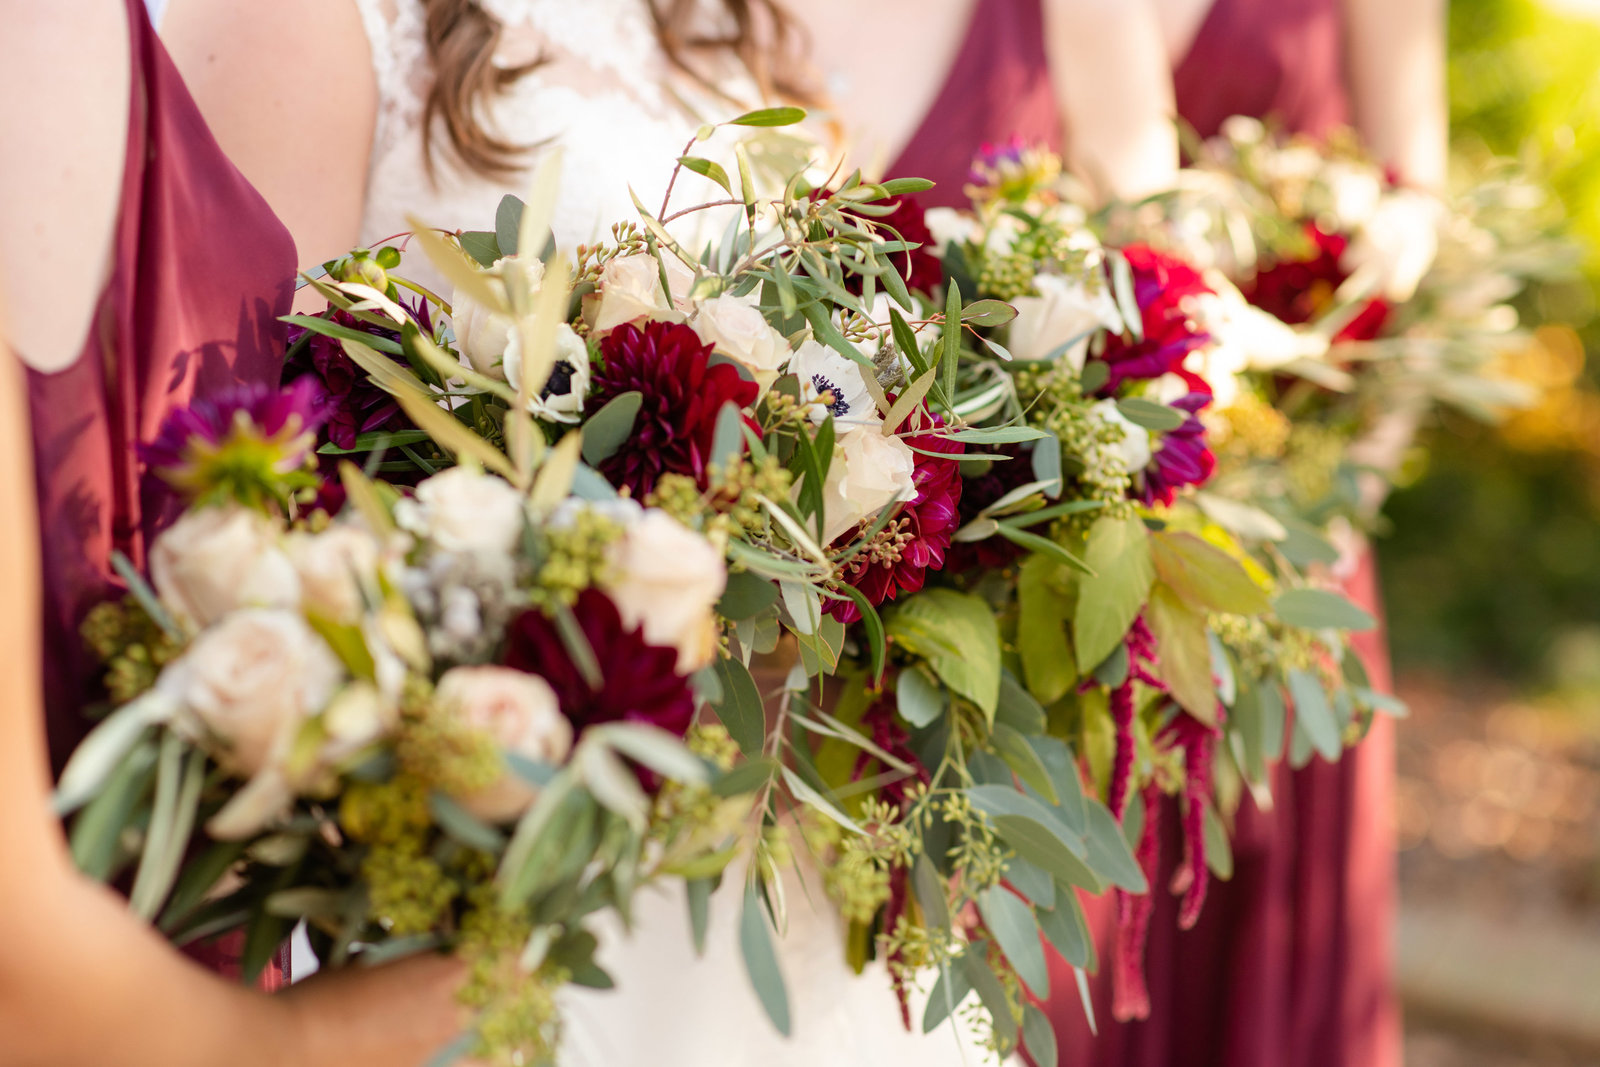 bride and bridesmaids holding bouquets with burgundy flowers